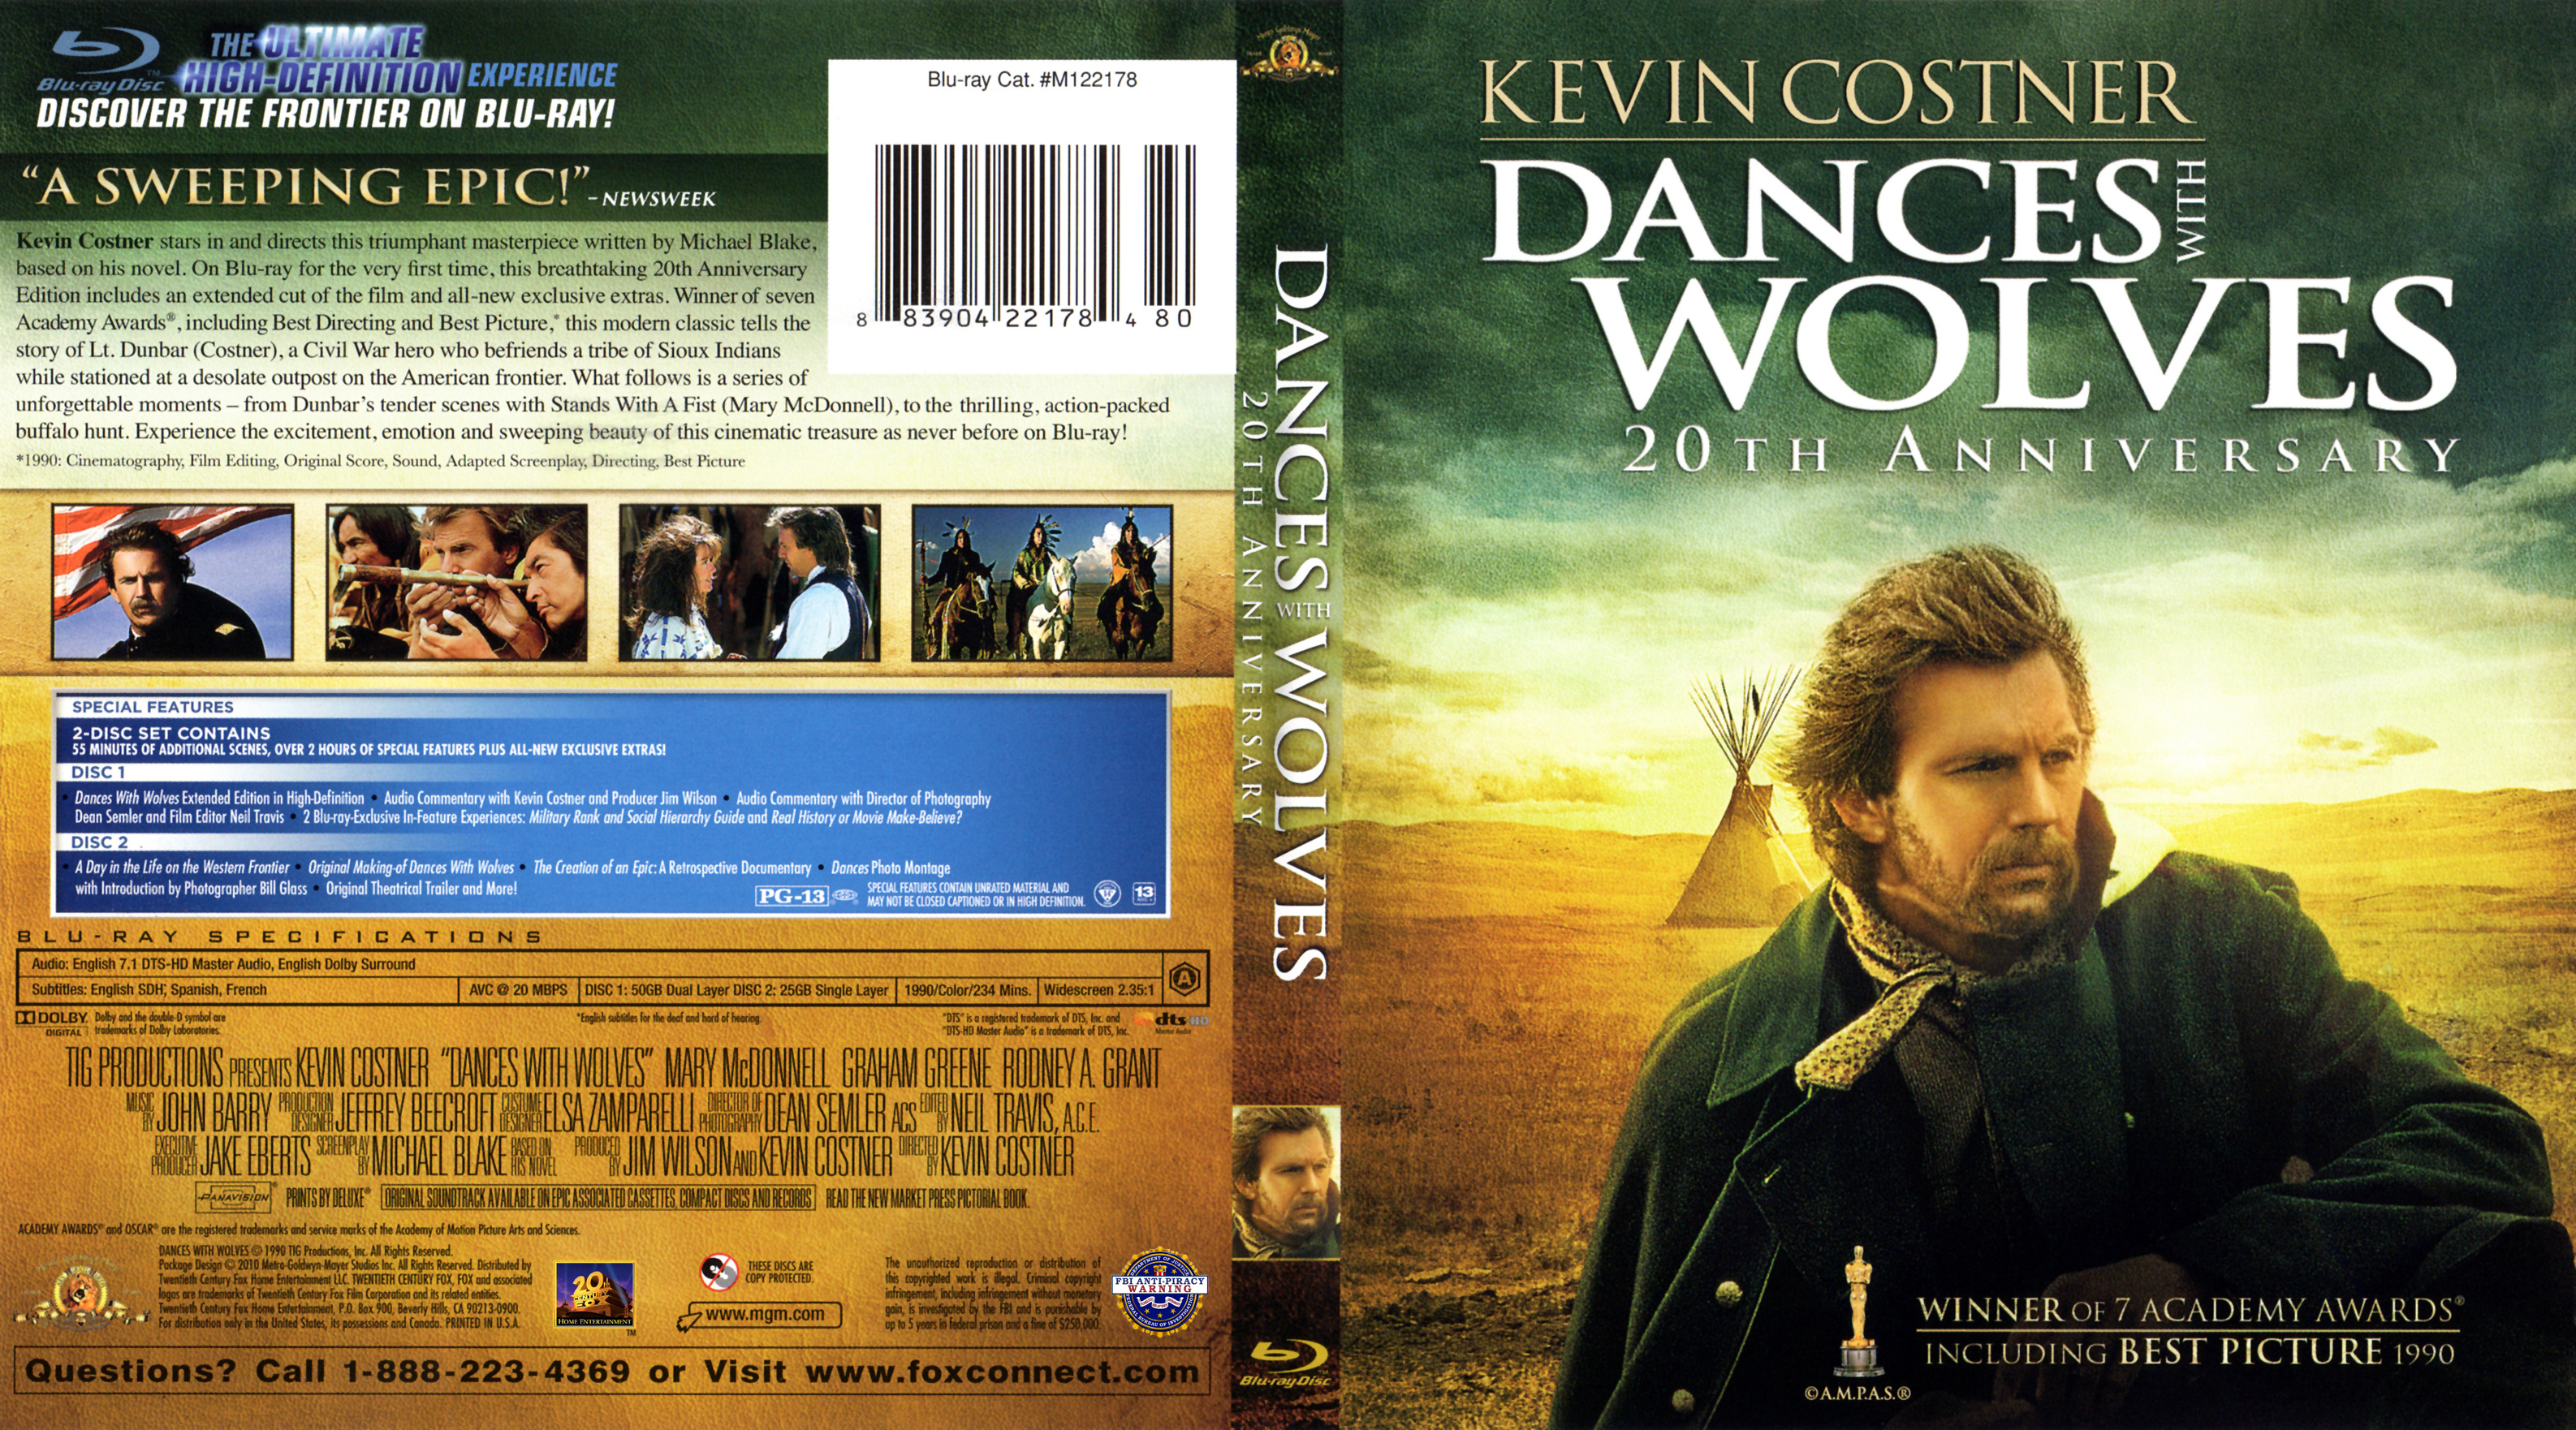 a comparison of dances with wolves film and novel by michael blake That sort of comparison need  so much of the rest of the film dances with wolves treats the  by michael blake, based on his novel.